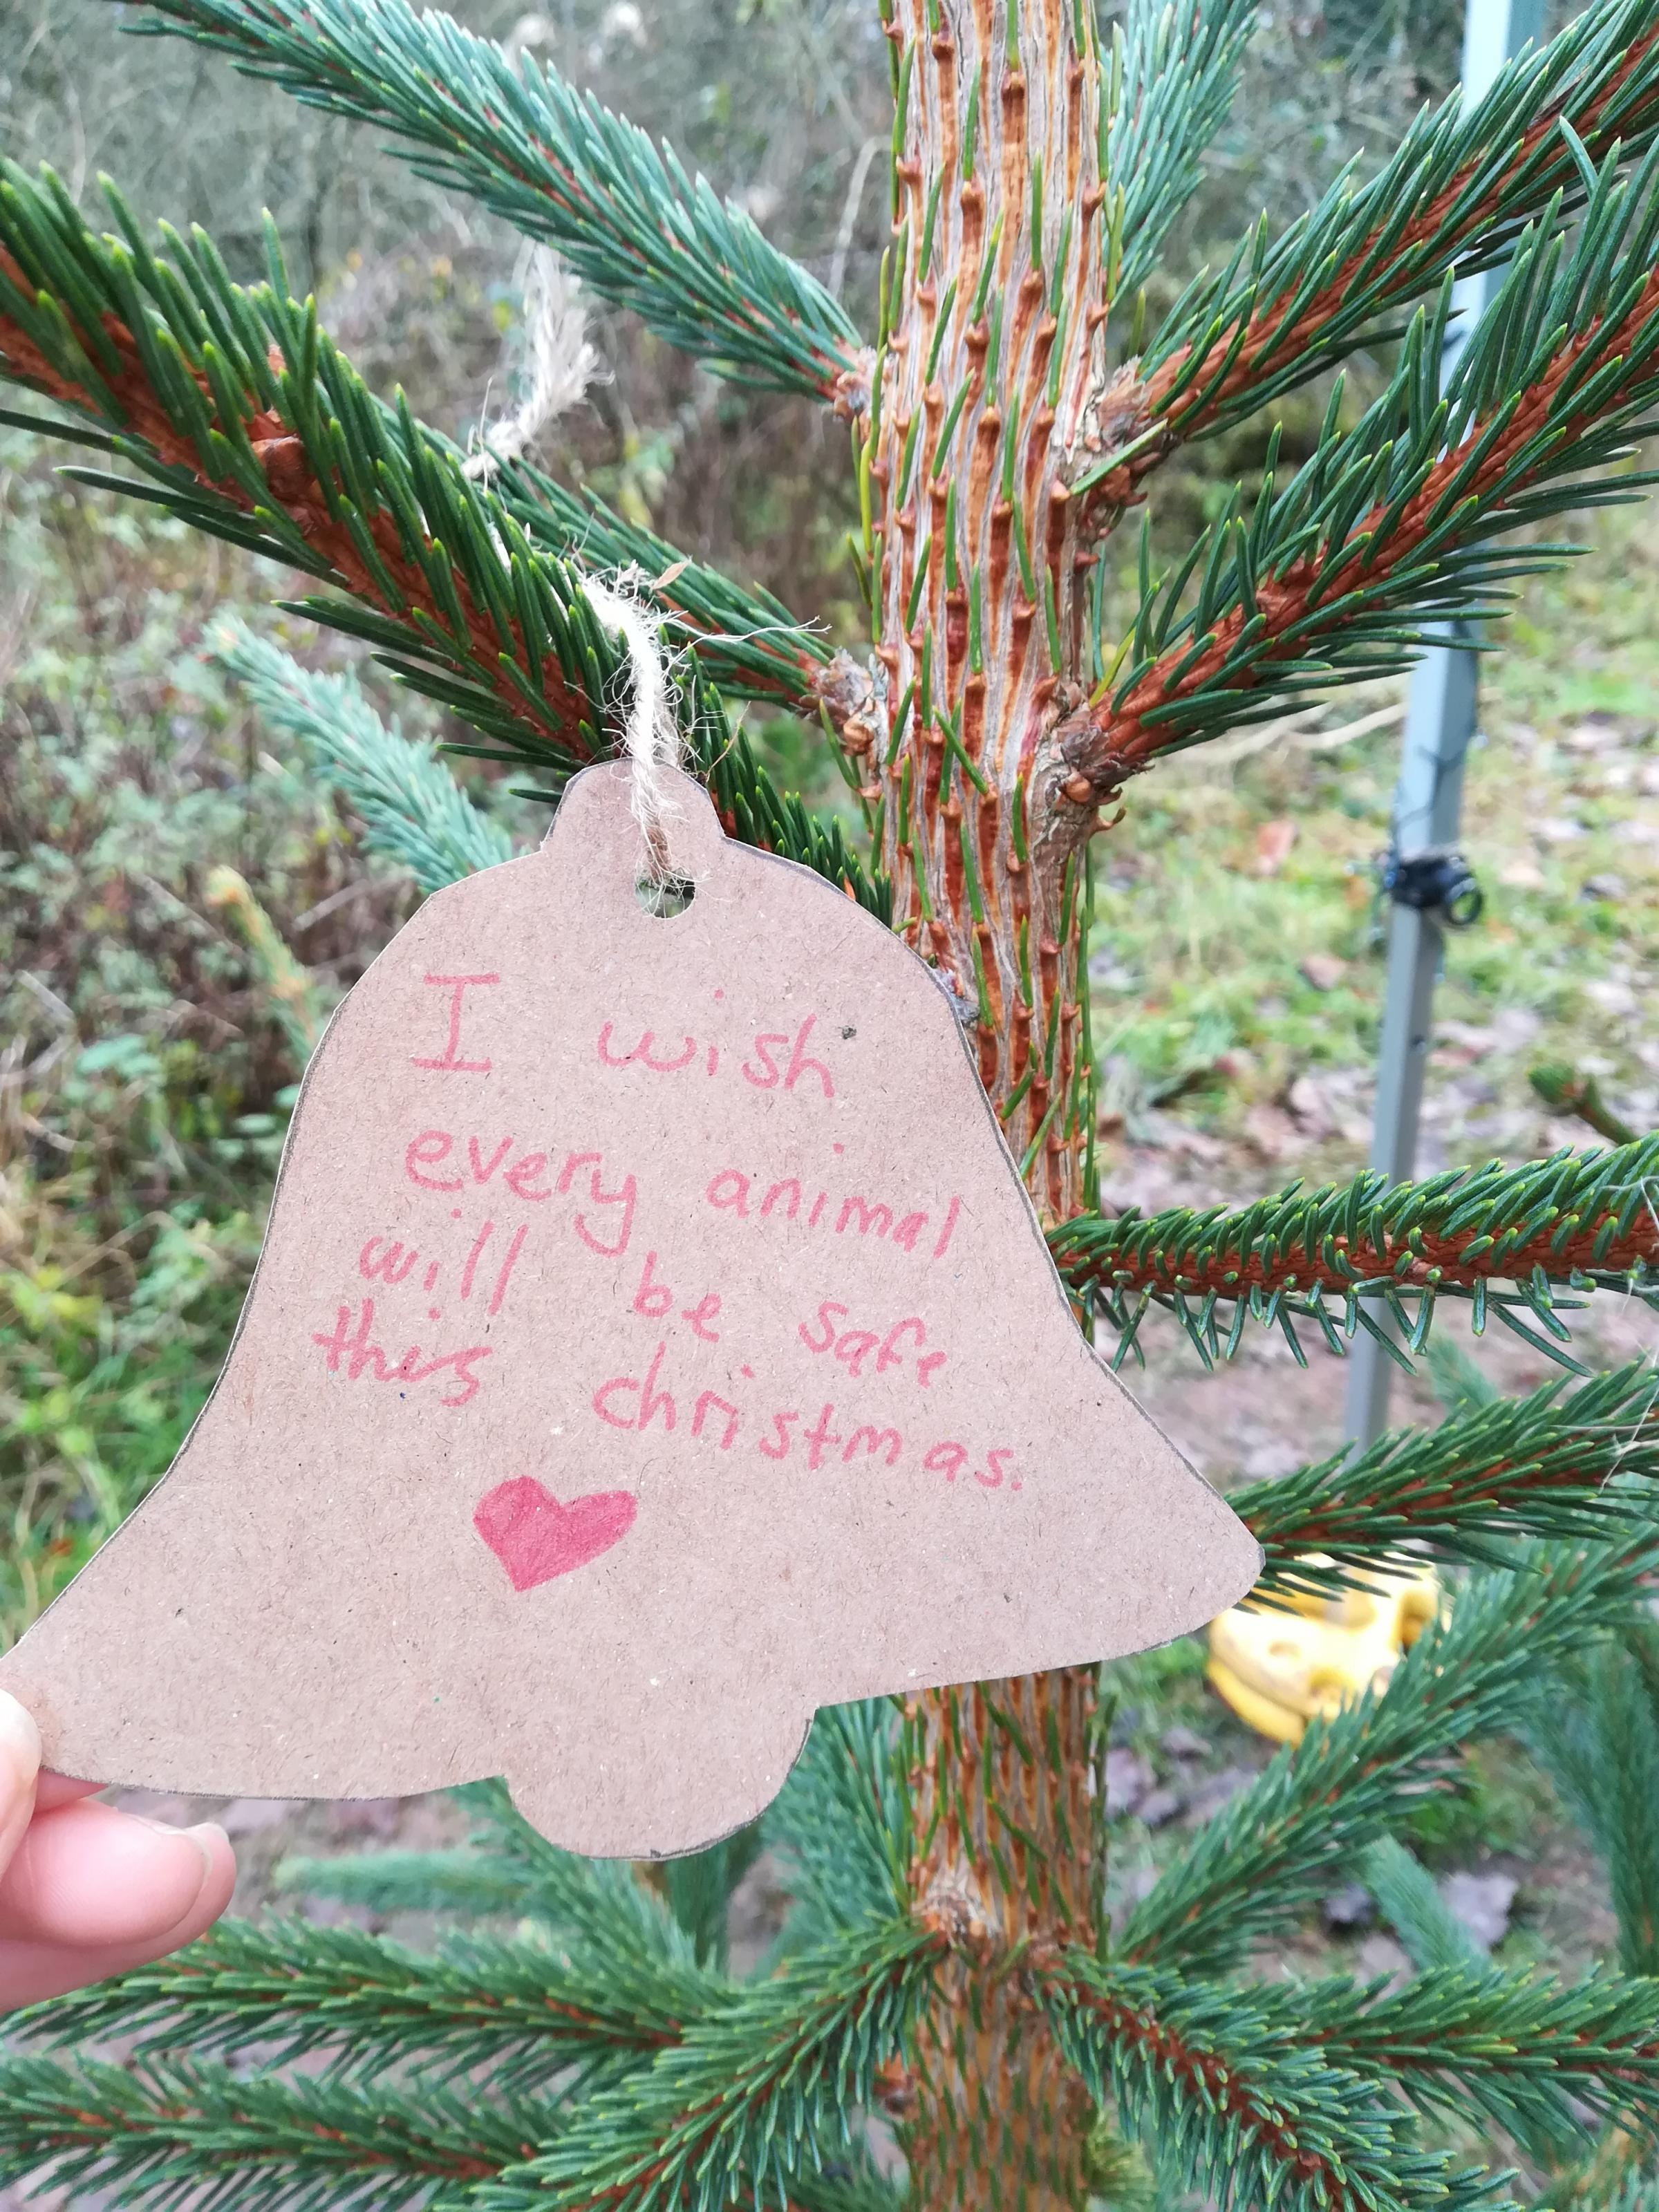 """I wish that every animal will be safe this Christmas""  was written on this message card for the Wishing Tree"